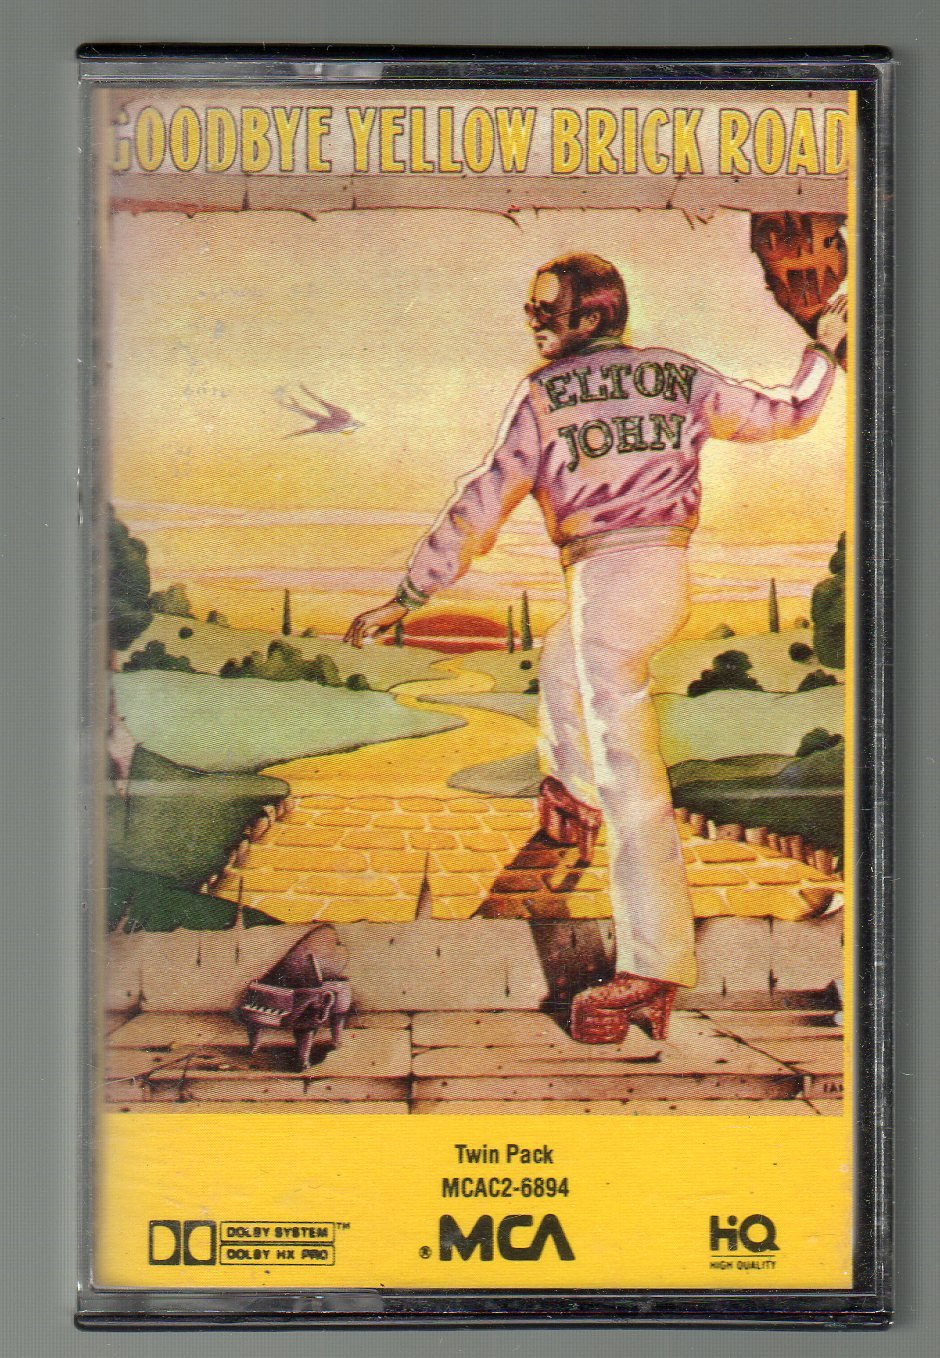 Elton John - Goodbye Yellow Brick Road Cassette Tape